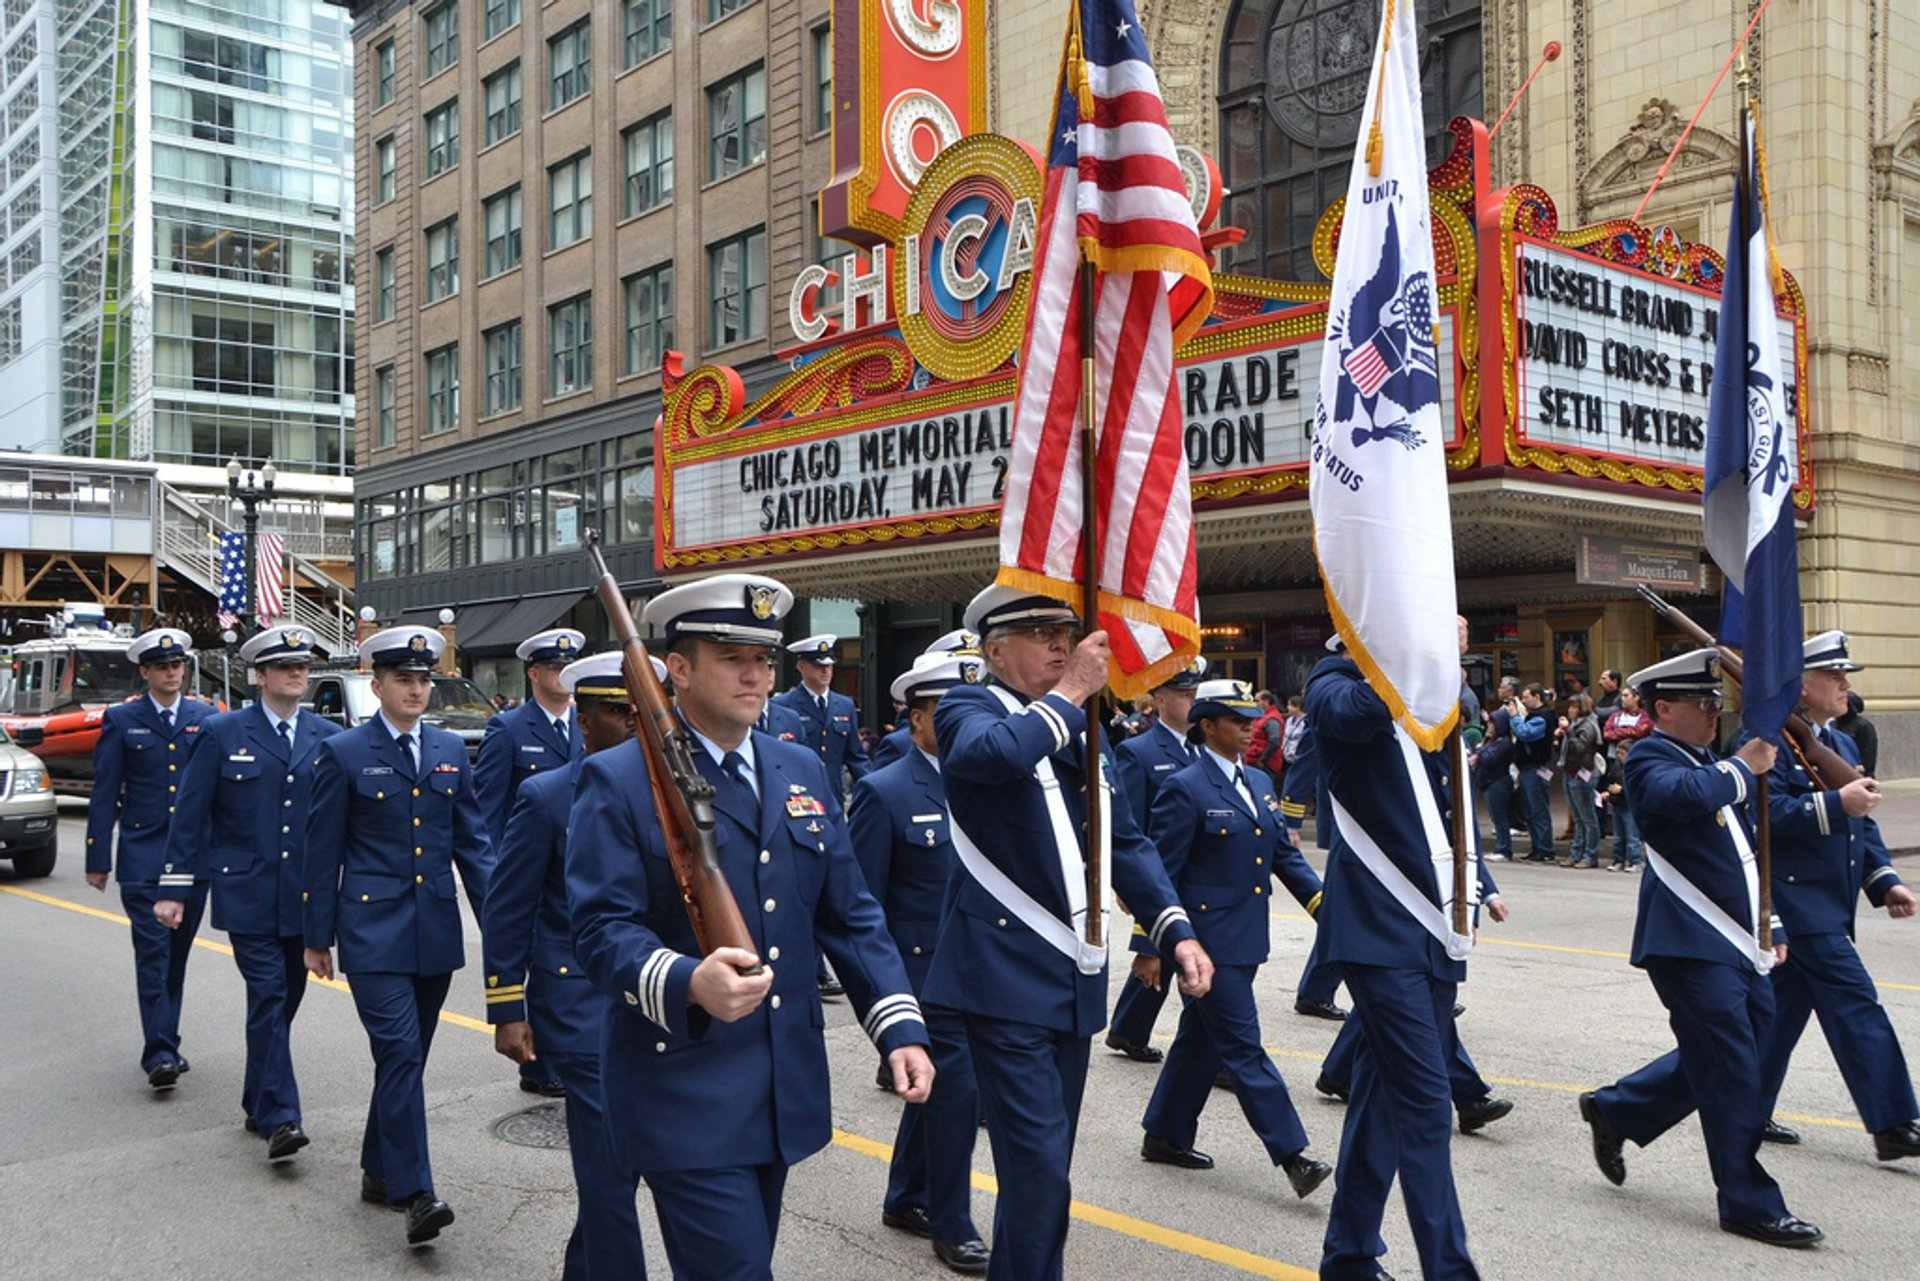 Memorial Day Parade in Chicago 2019 - Best Time